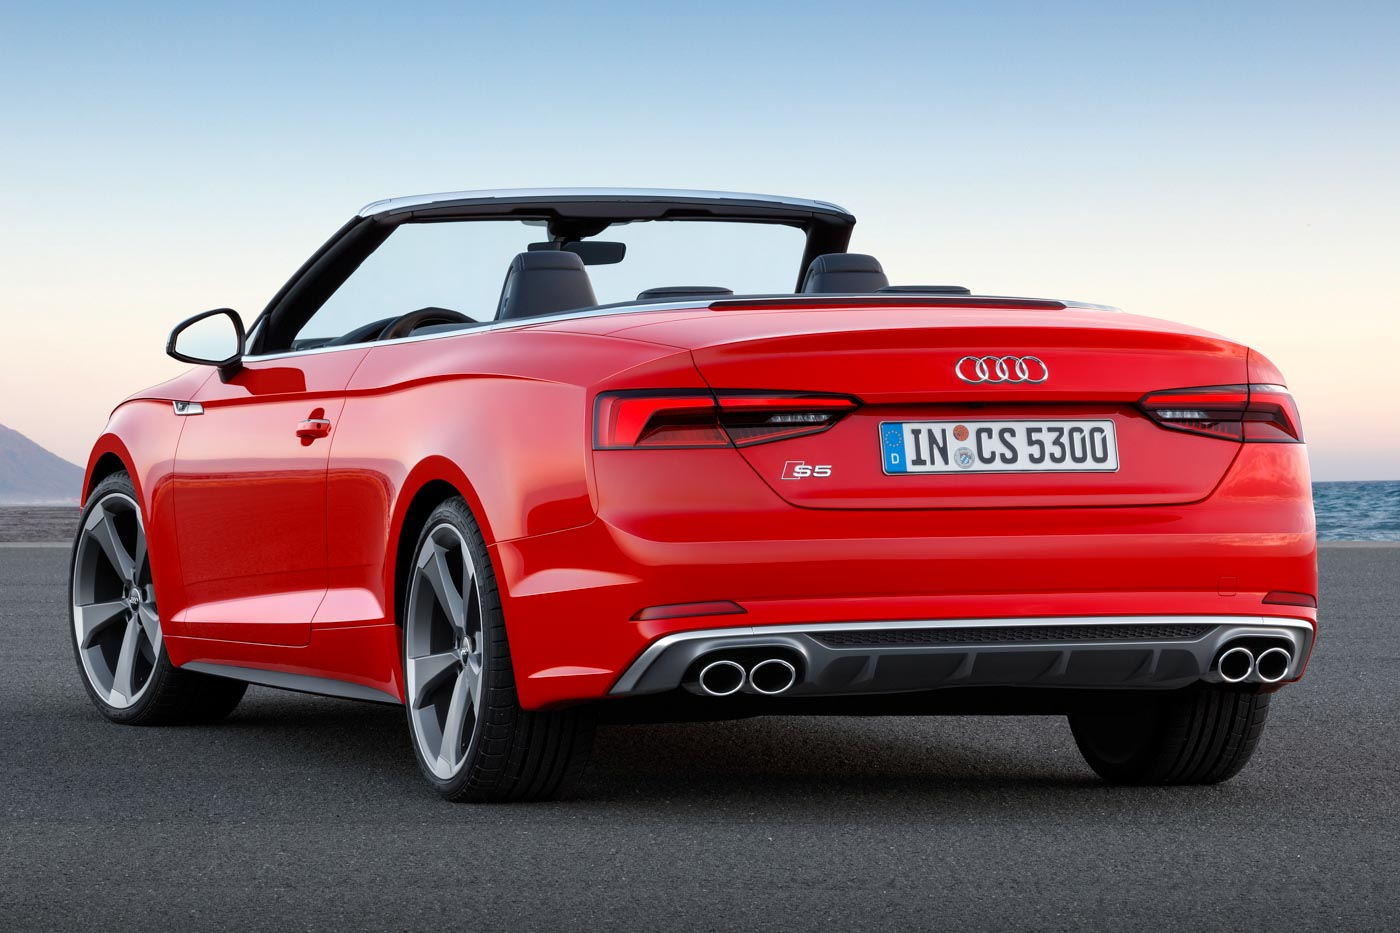 2017 audi a5 s5 cabriolet unveiled lighter stronger and more powerful. Black Bedroom Furniture Sets. Home Design Ideas